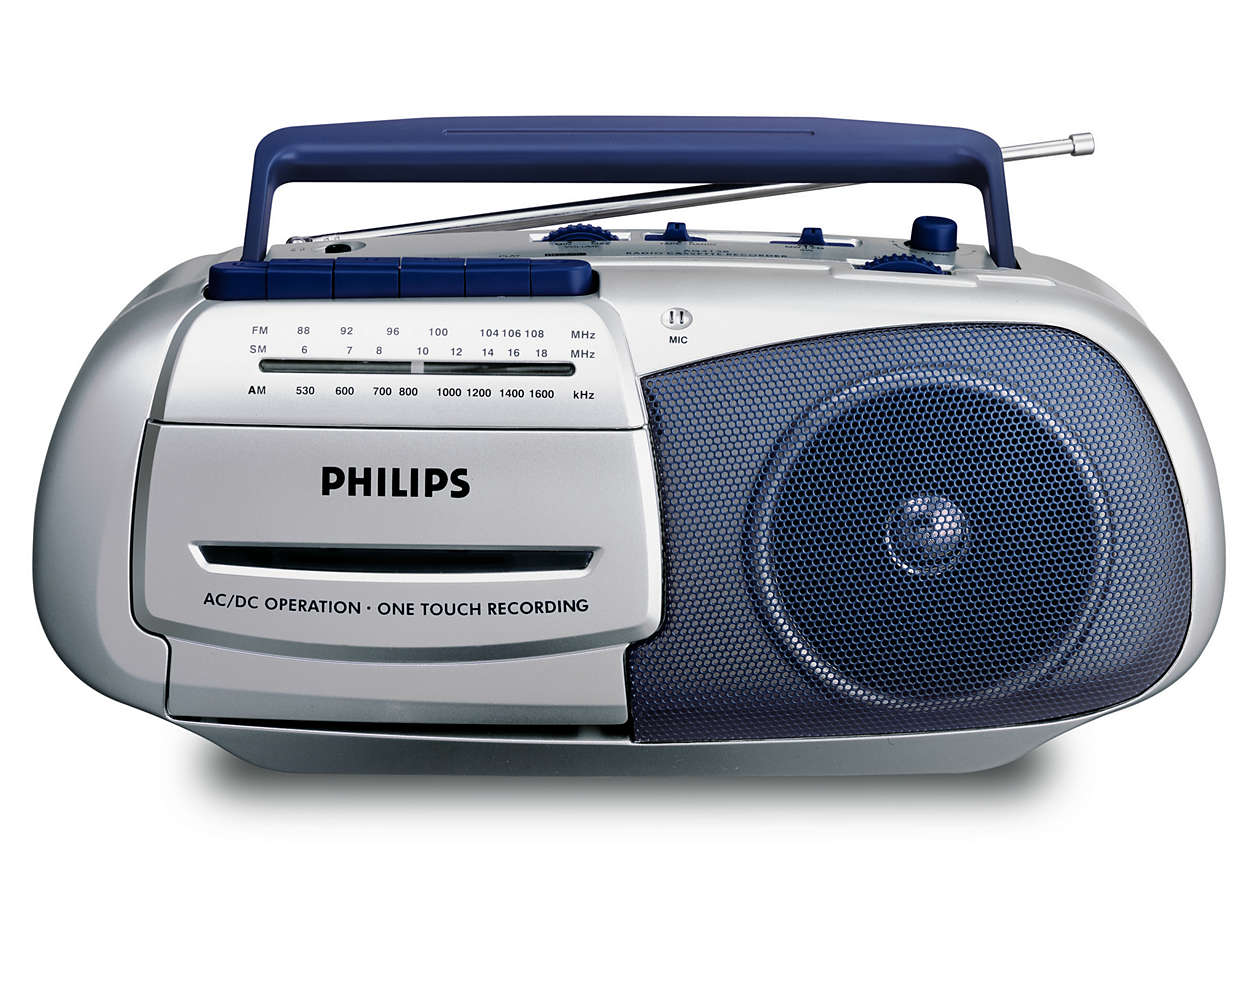 radio cassette recorder aq4130 01 philips. Black Bedroom Furniture Sets. Home Design Ideas